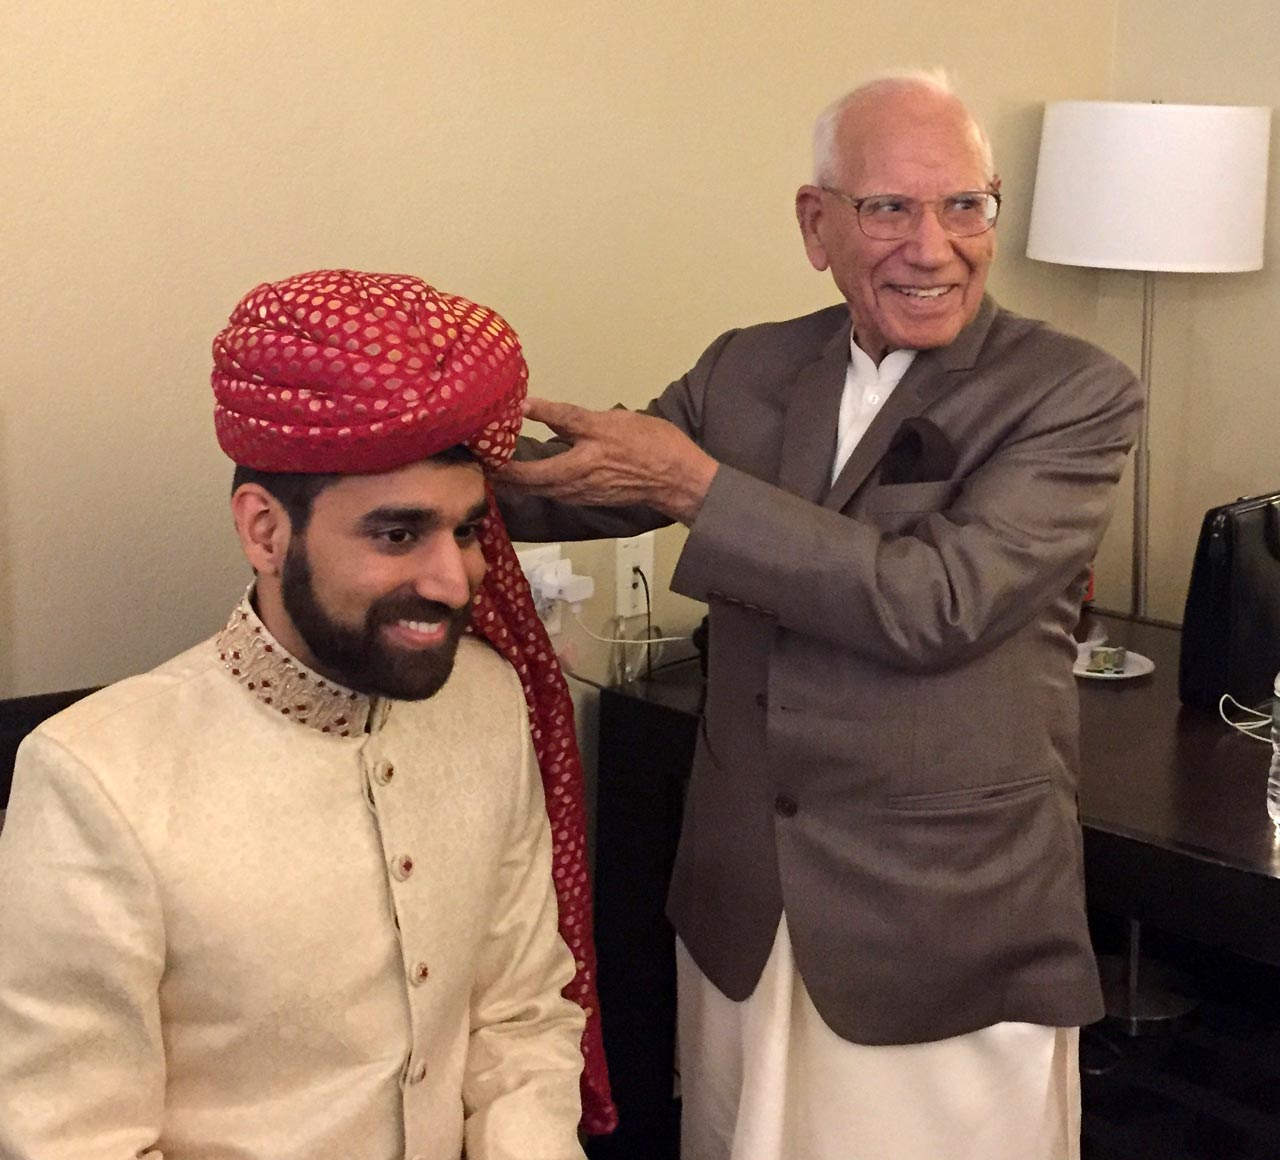 Shaikh Amin as the family elder, putting on a traditional wedding turban on his grandson's head.